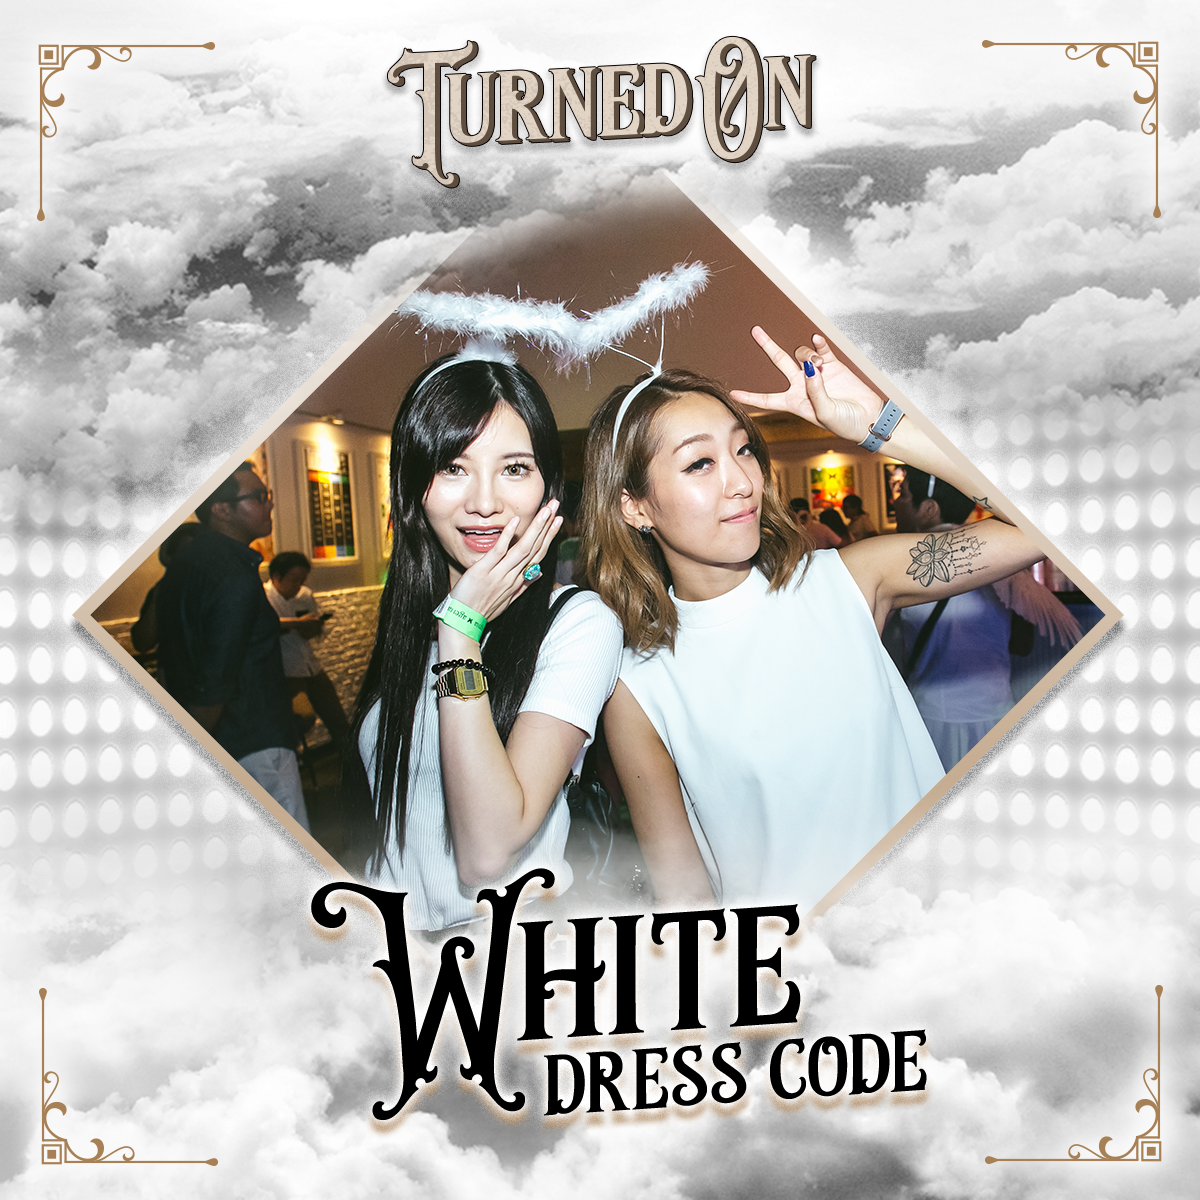 White-Dress-Code.png